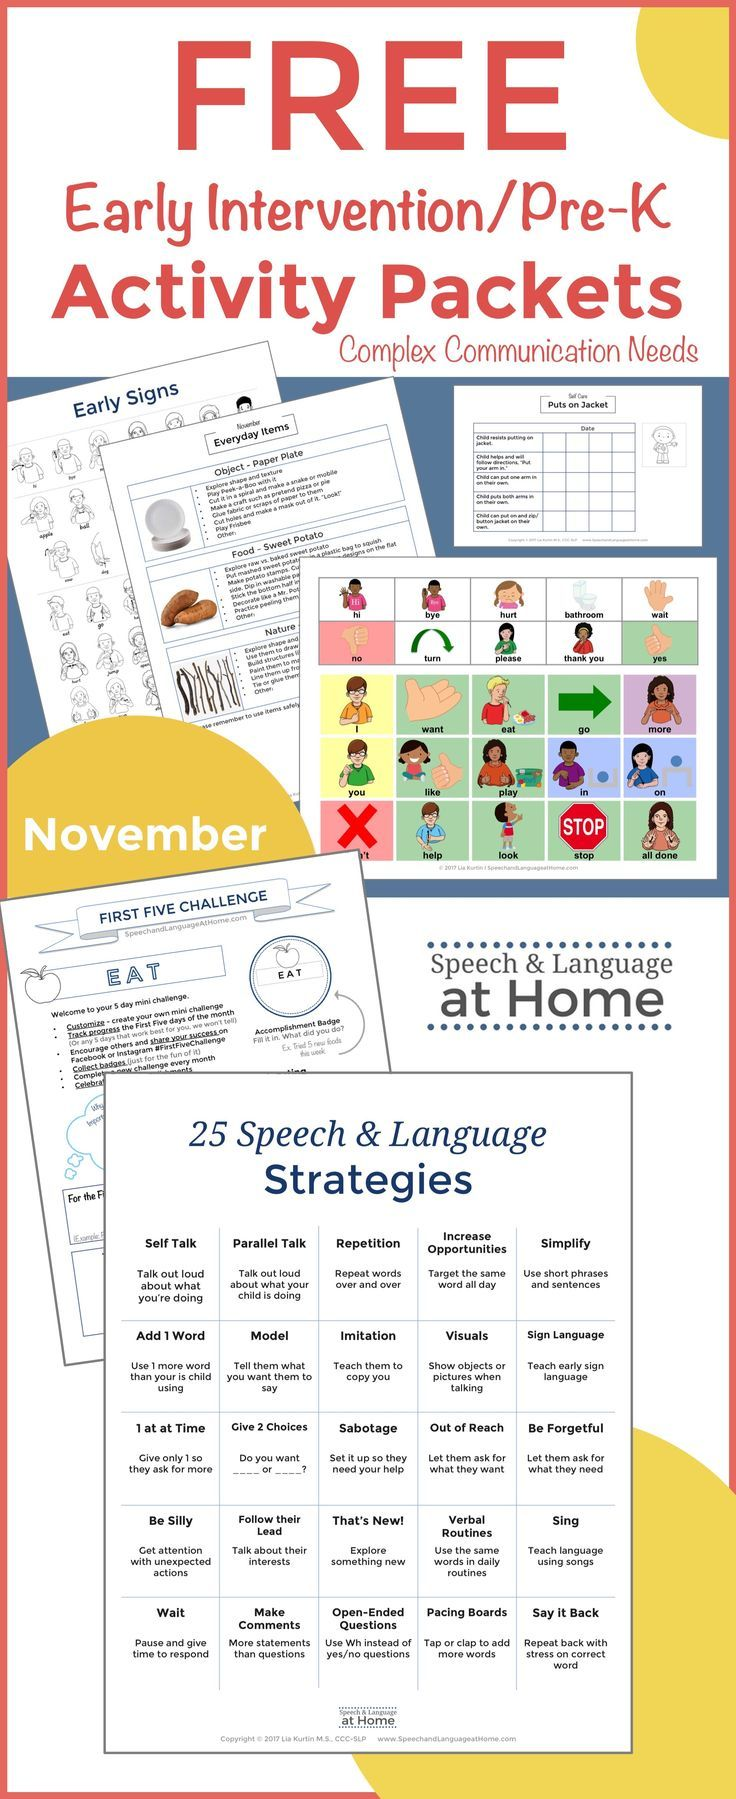 Free Early Intervention Activity packets for EI or preschool speech therapy. Speech and Language Strategies, Everyday Items, Early Signs, Early Songs, Classic Toys, DIY Toys, Early Games, Movement Games, Self Care